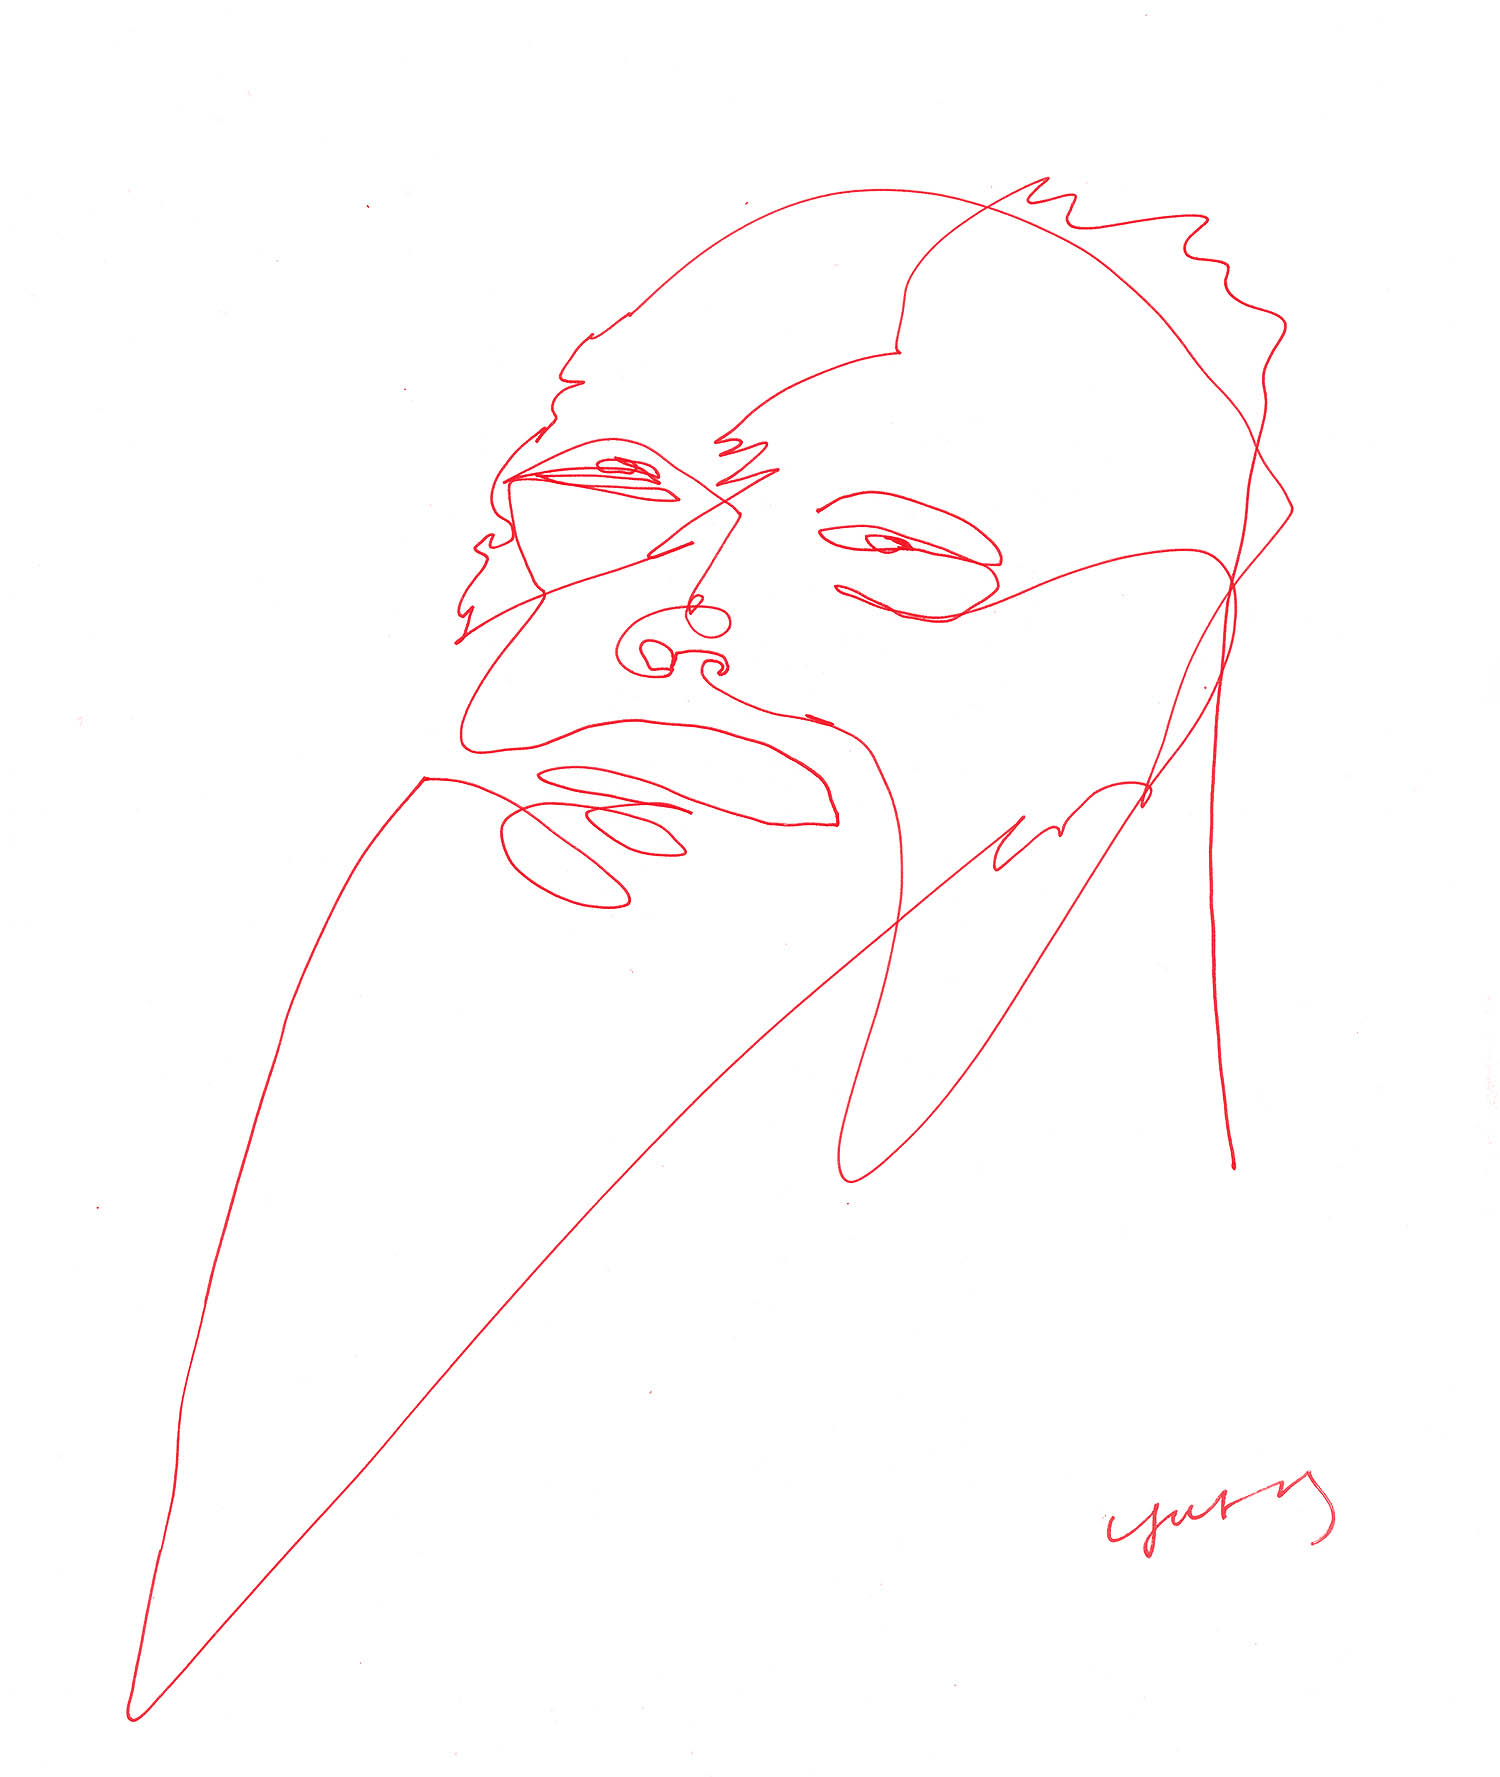 'Ancient Demon Waking Up from Hibernation in Contemporary Times', continuous line pen drawing by Greek multidisciplinary artist Kostas Gogas.